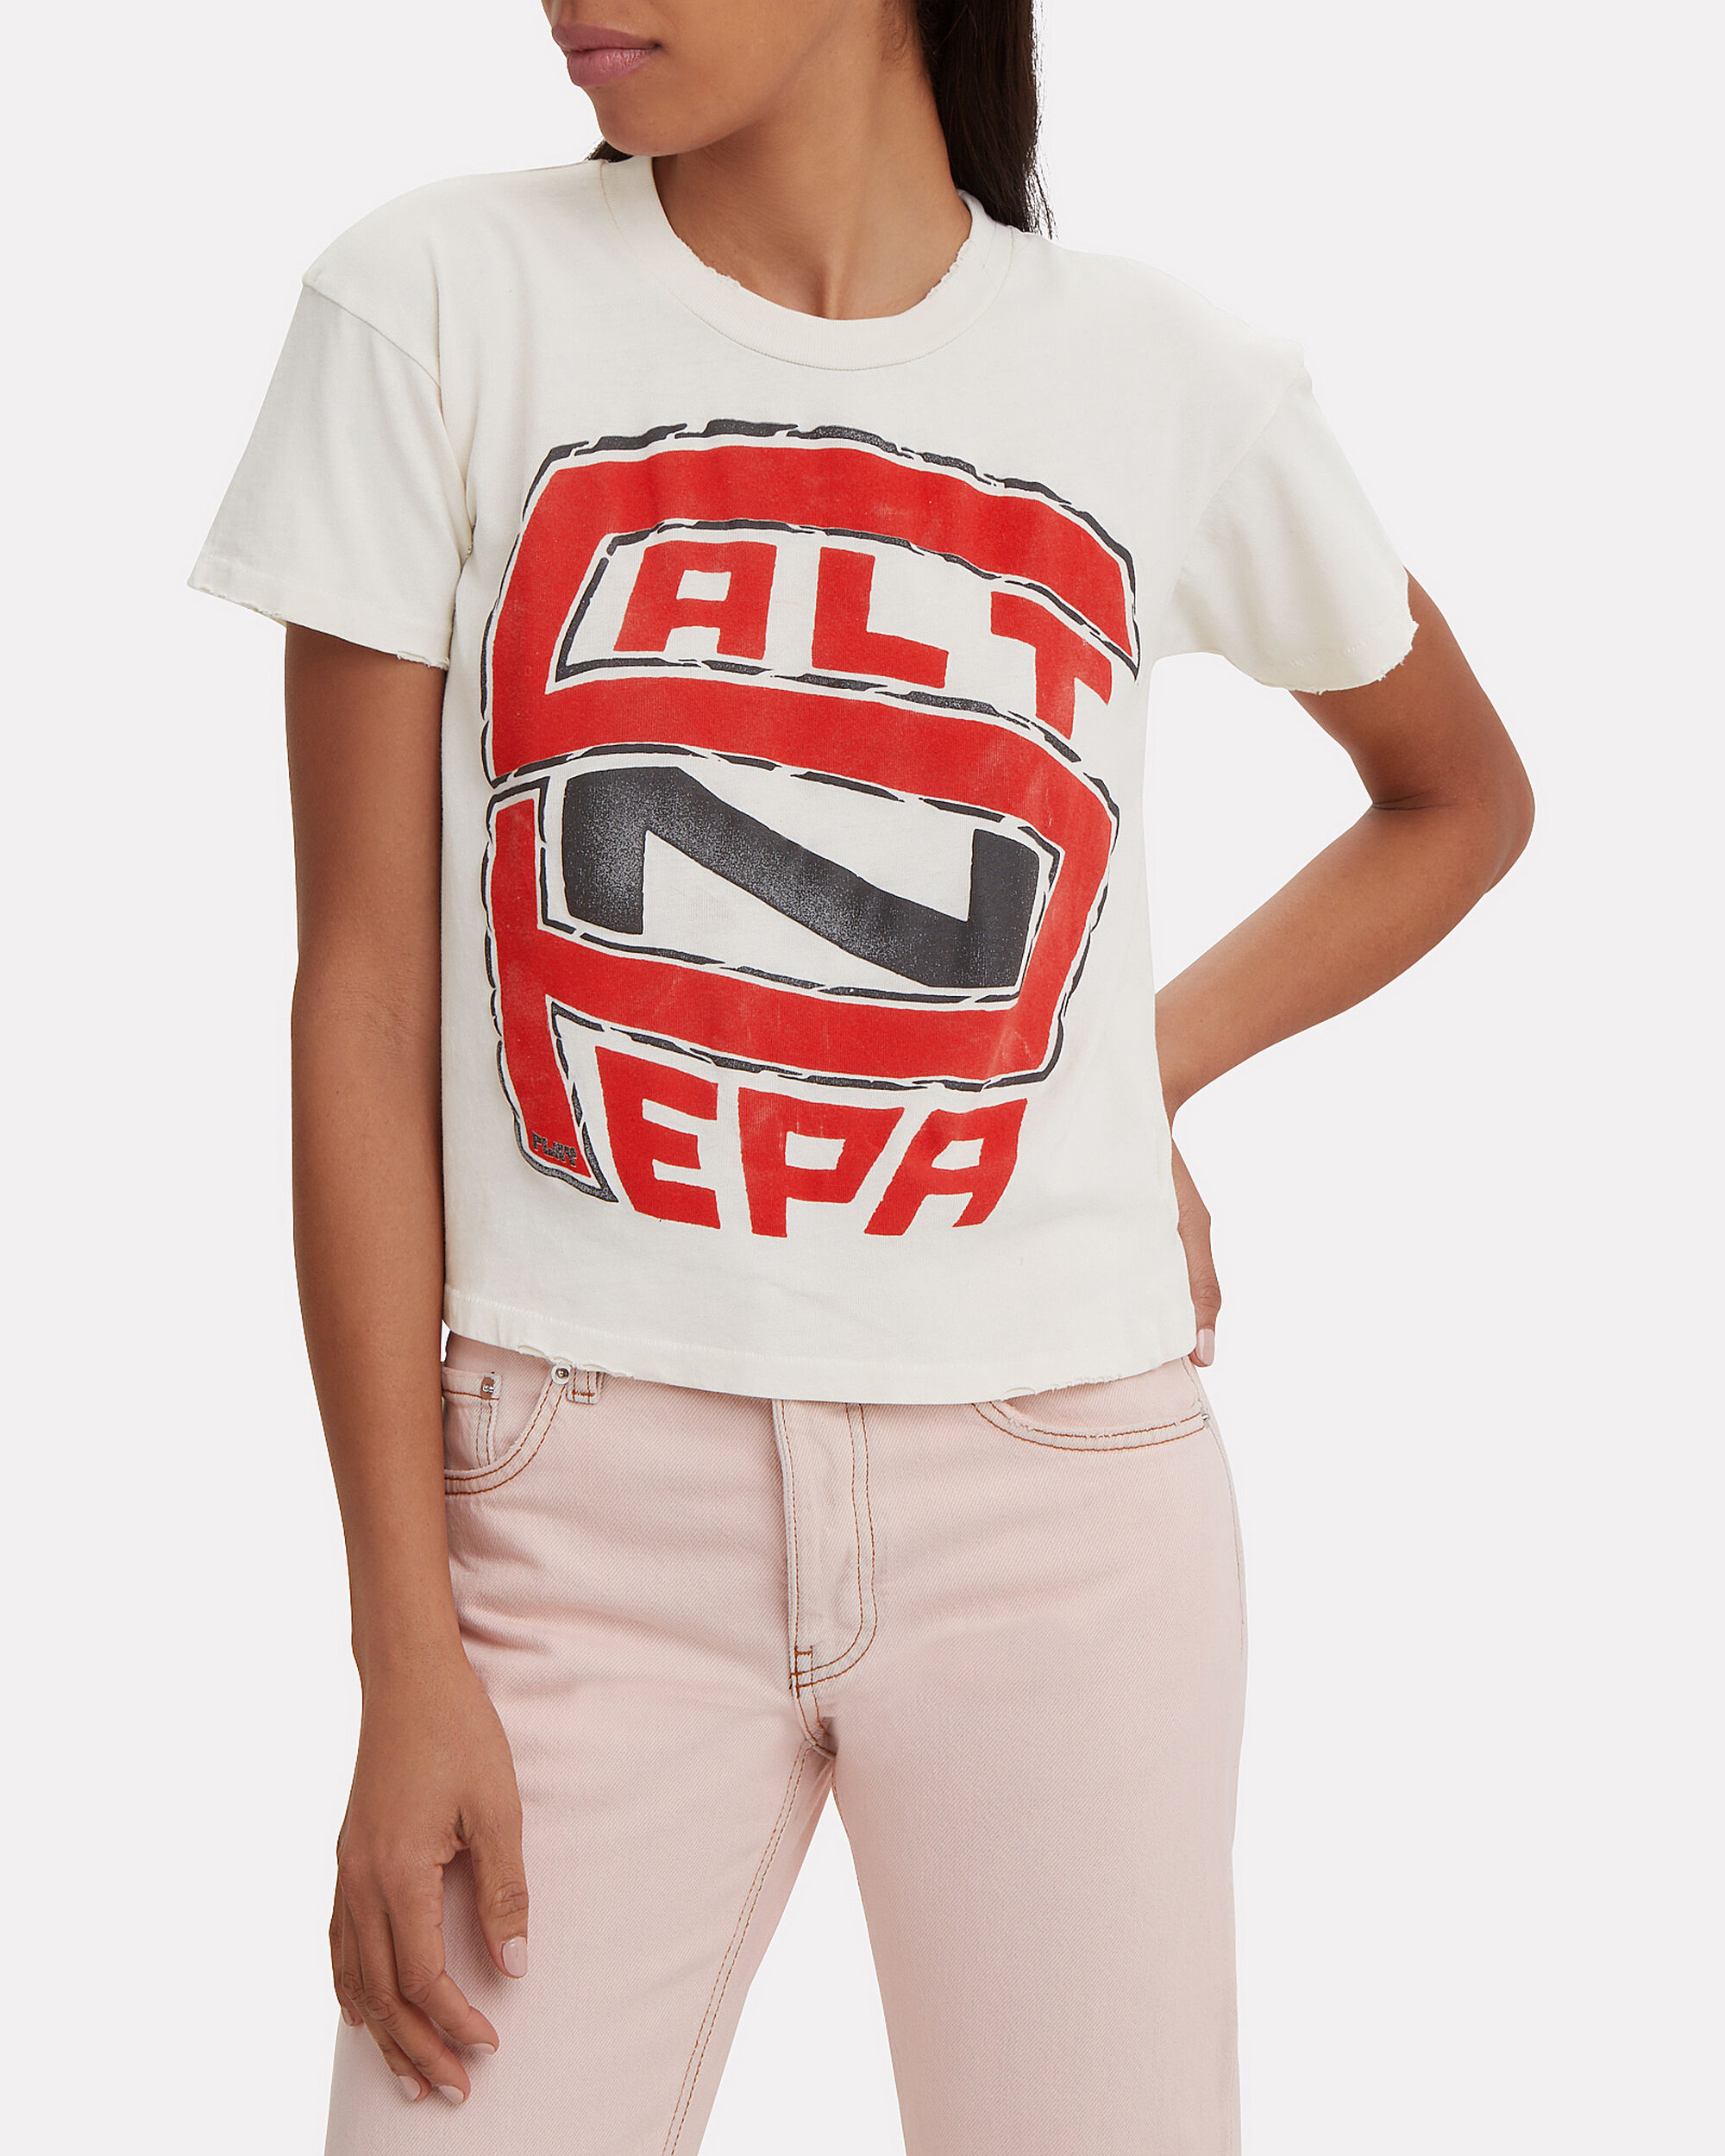 Salt N Pepa Cropped T-Shirt, WHITE/RED, hi-res